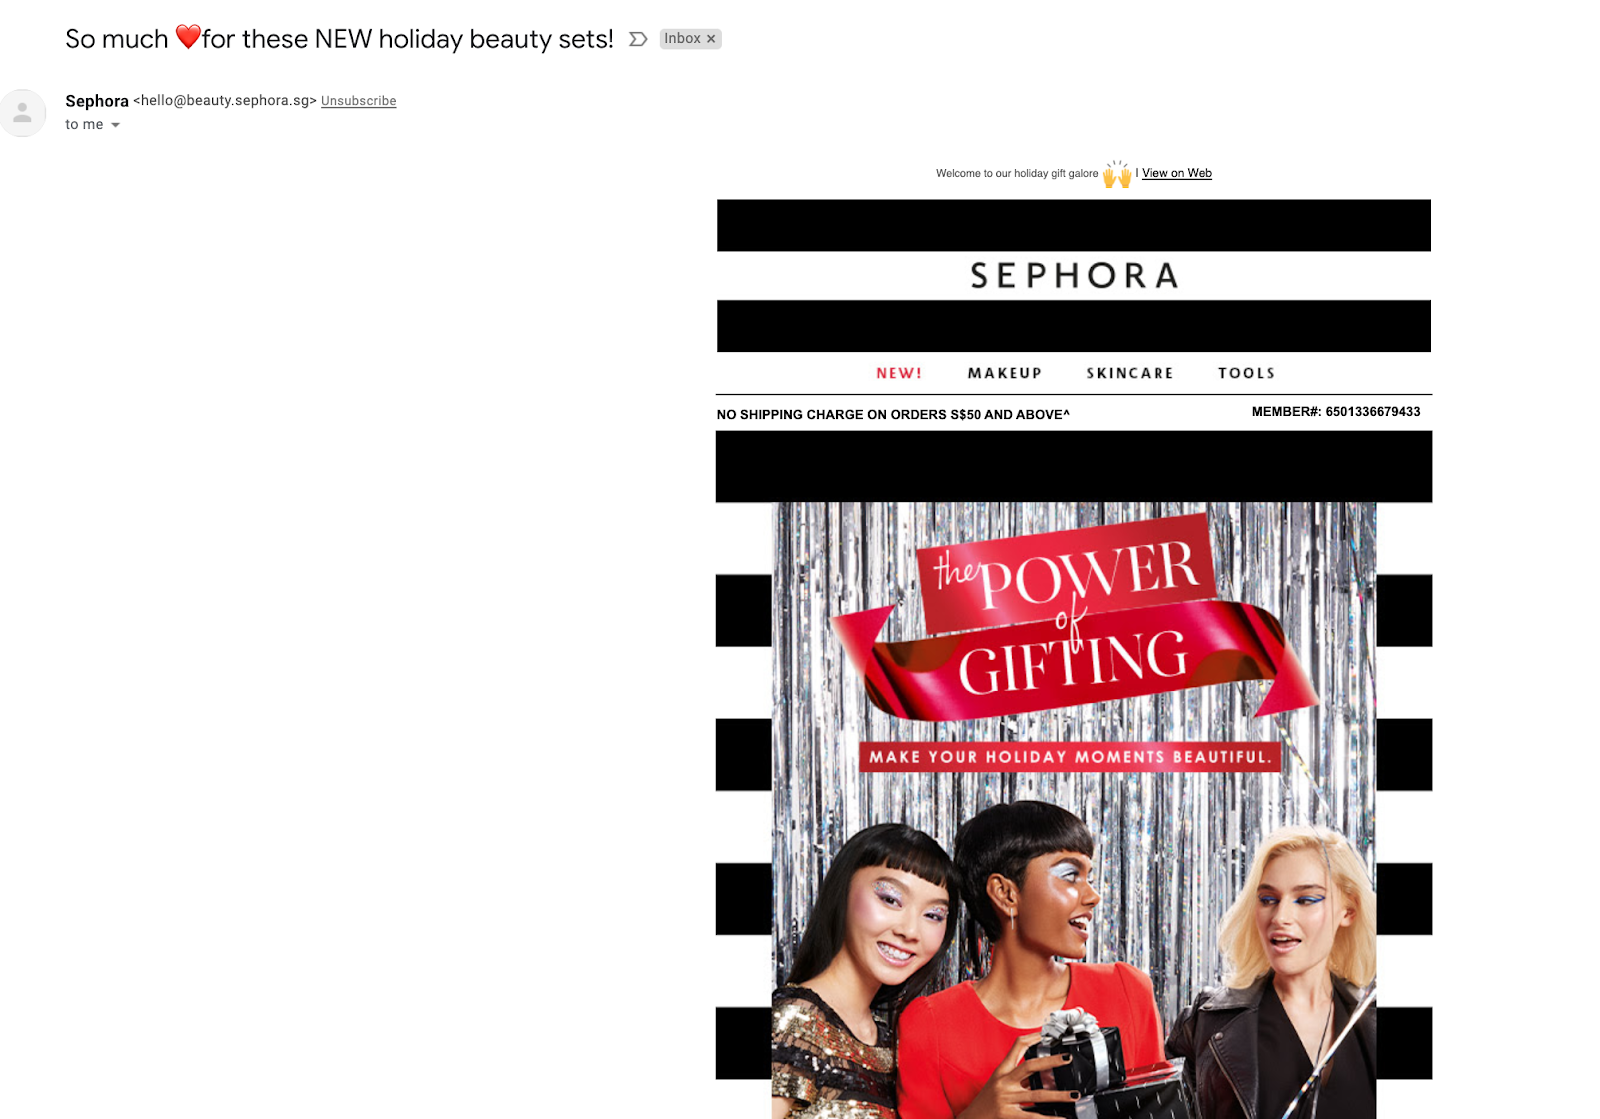 Email marketing campaign example by Sephora